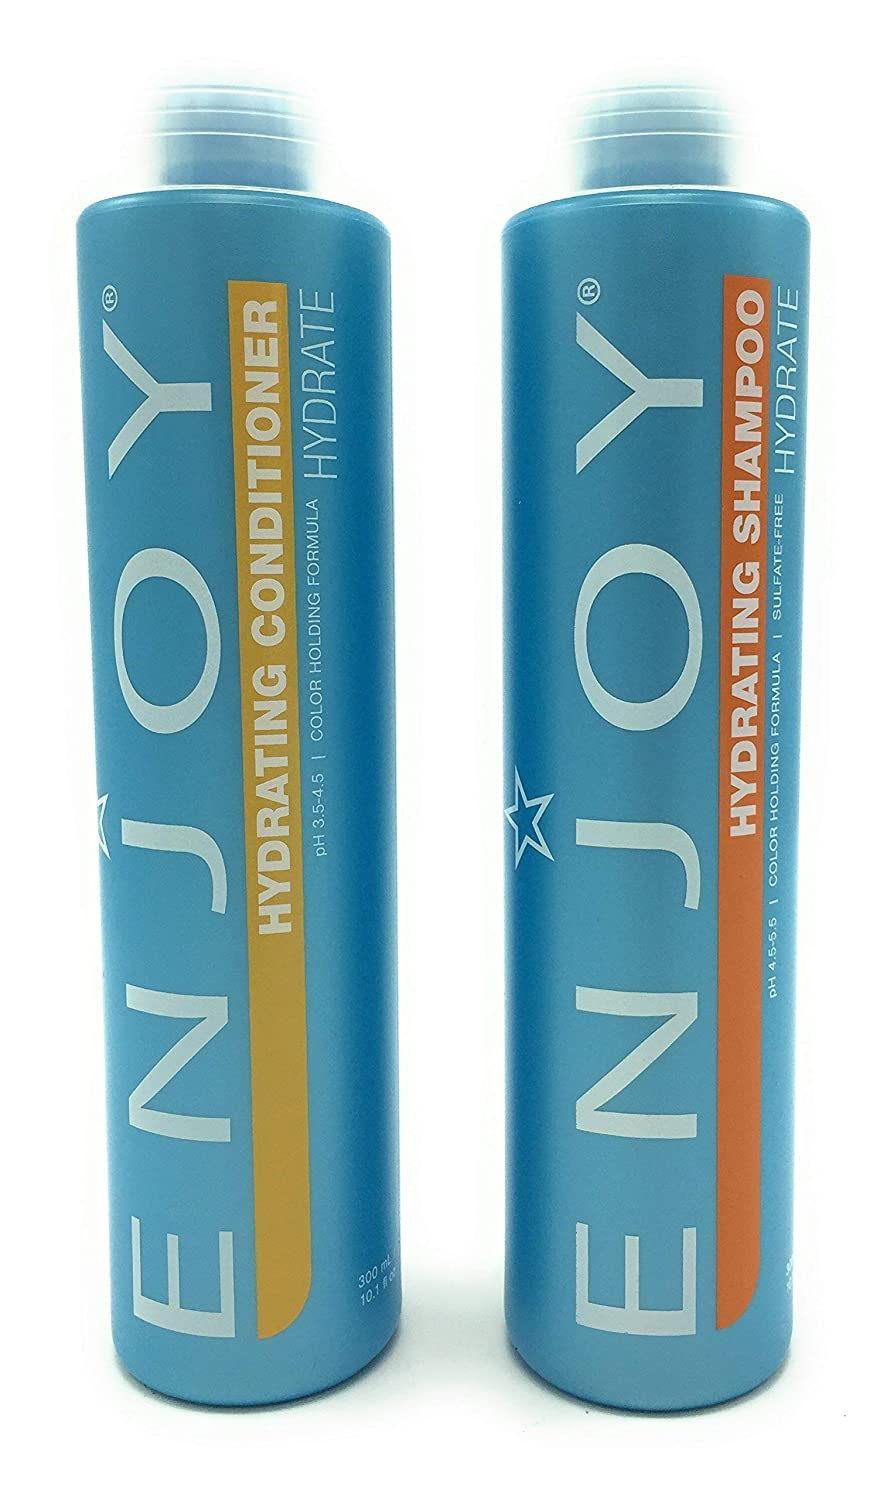 Enjoy Sulfate-free Hydrating Duo (Shampoo and Conditioner) - 10 Oz (packaging may vary)